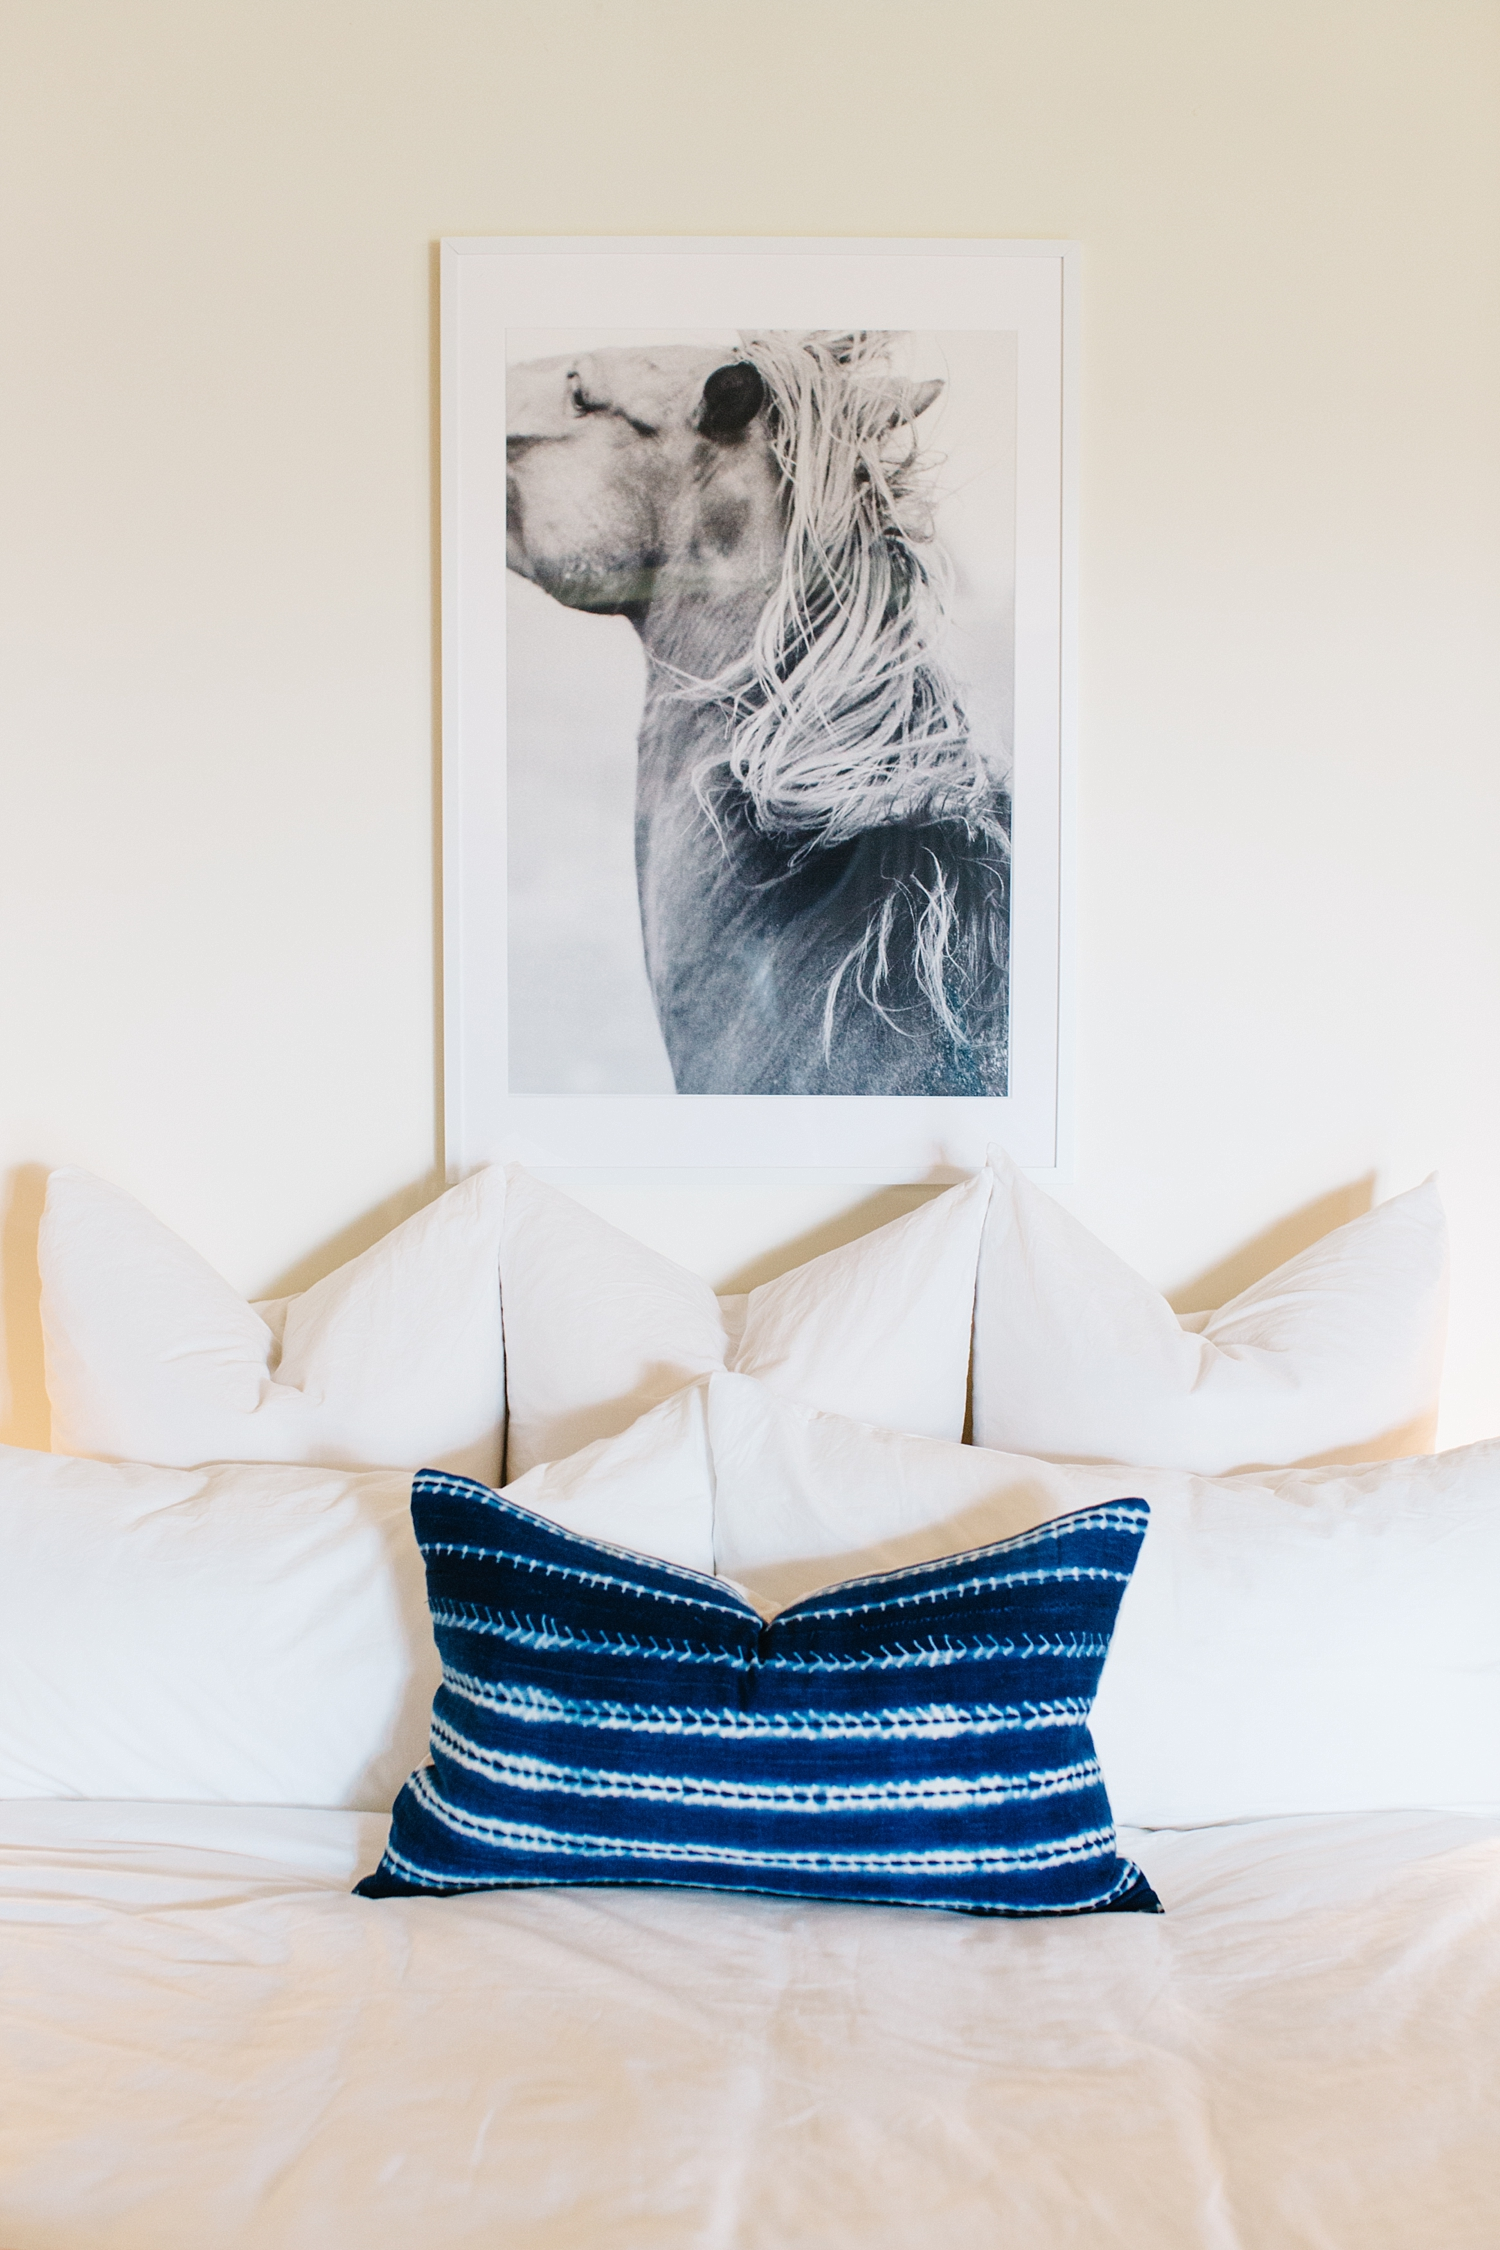 Possessing a powerful intensity,the authentic African indigo mudcloth pillow and the black and white print are the pieces I chose to really define this space. The white frame melts into the wall bringing the potency of the black and white equine print to the forefront. The strong shade of indigo of the lumbar pillow becomes an additional focal point, with the pattern elevating it to textile art.